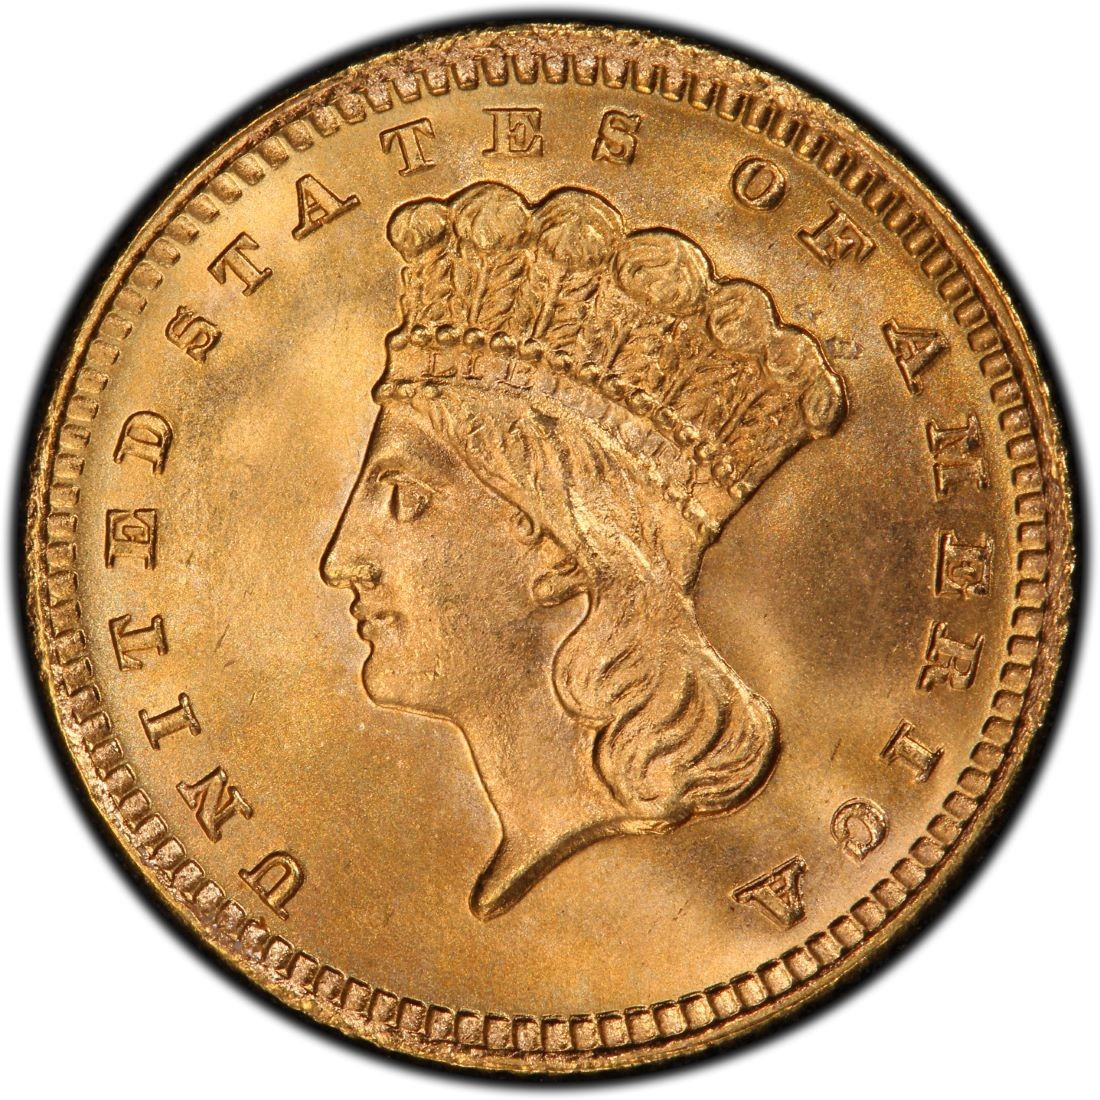 1887 Large Head Indian Princess Gold Dollar Values And